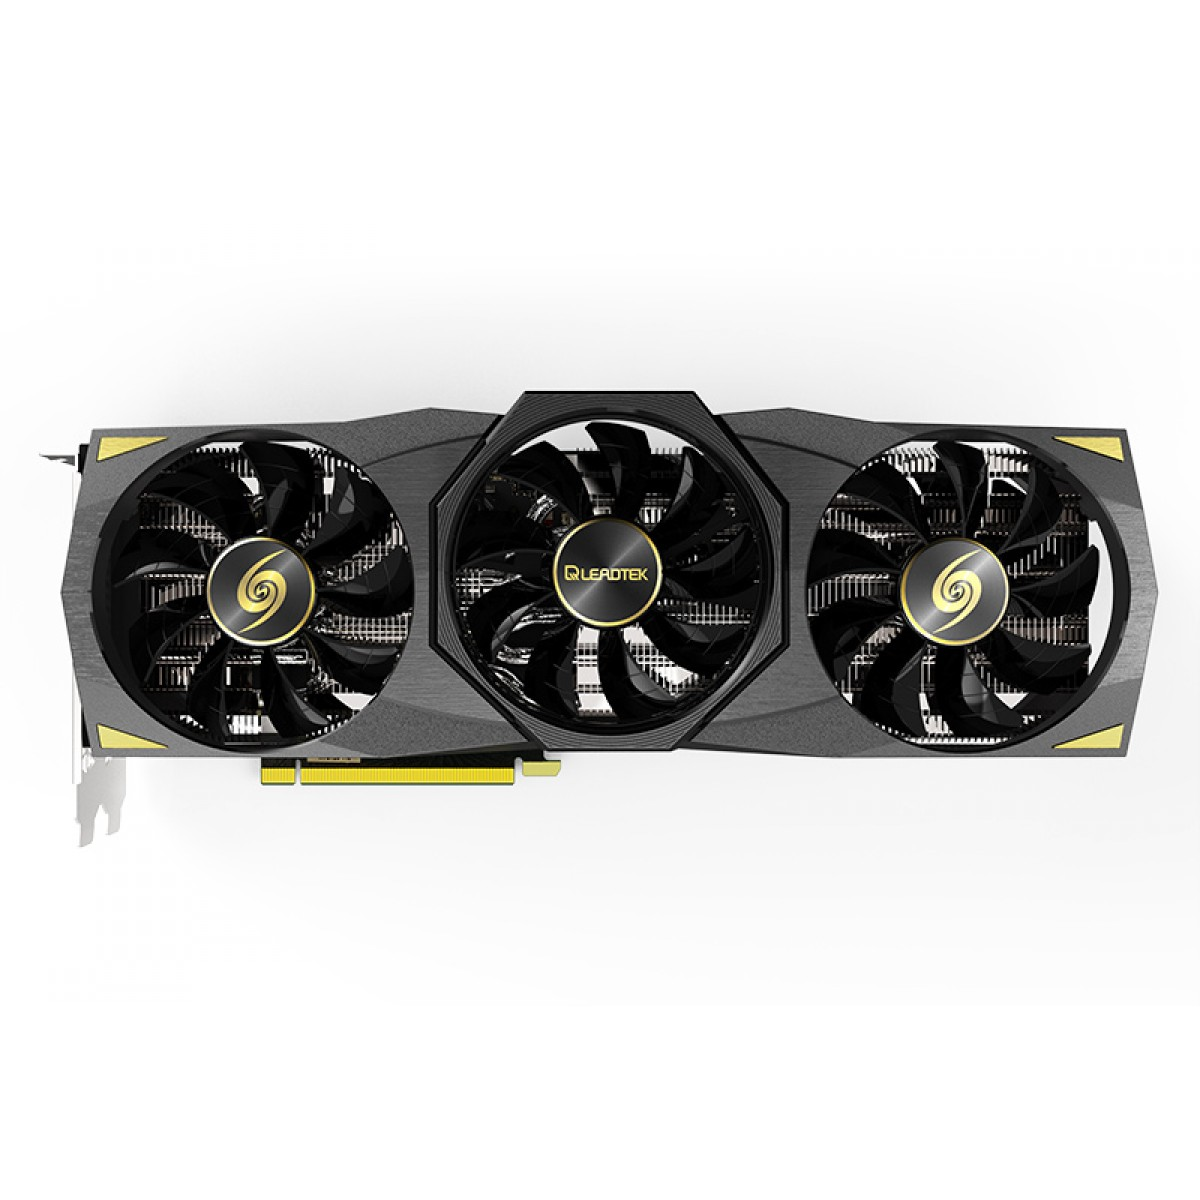 Placa de Vídeo Leadtek WinFast GeForce RTX 3090 Hurricane, 24GB, GDDR6X, 384bit